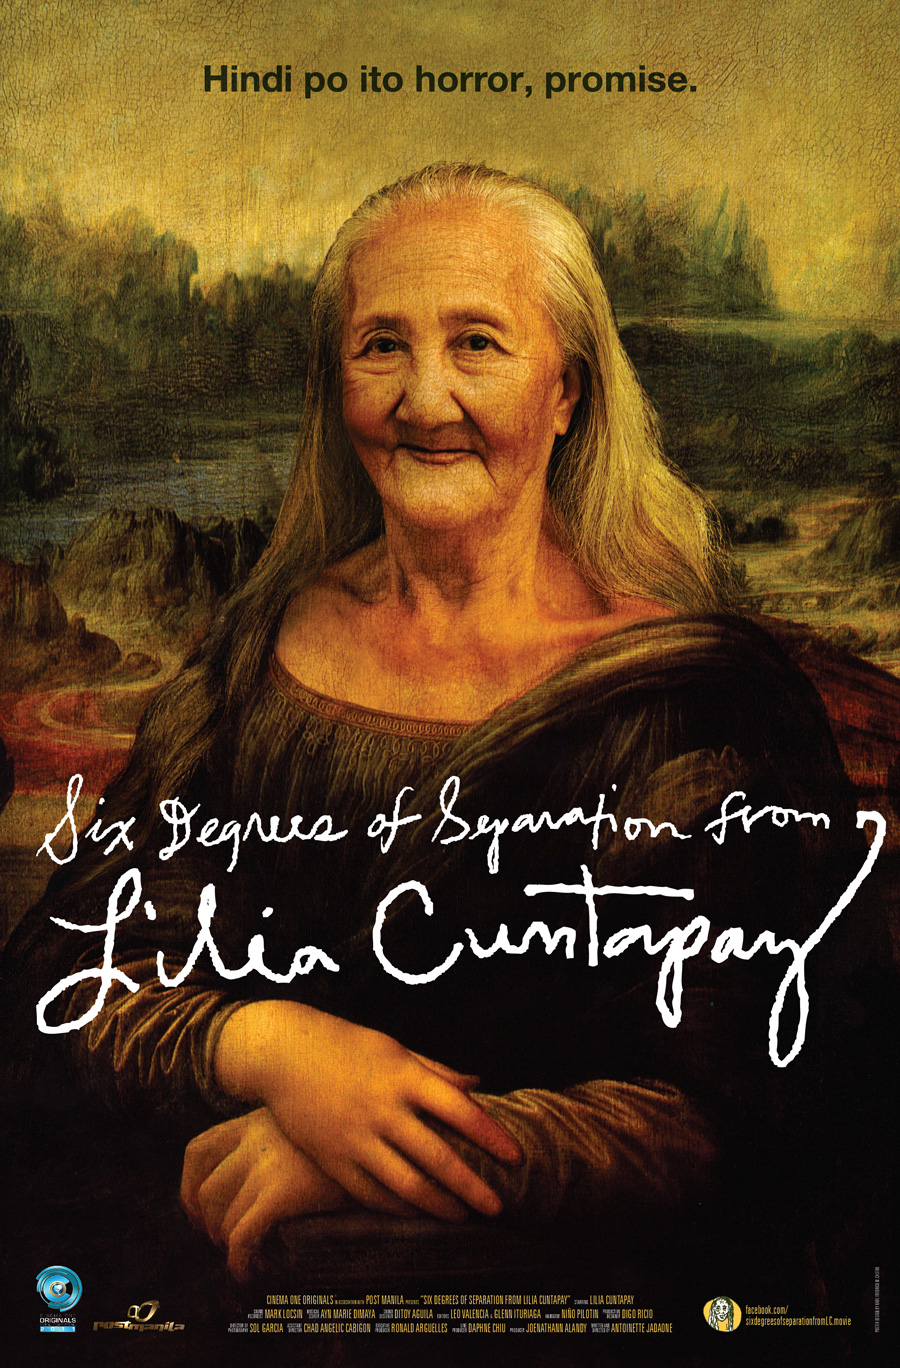 Six Degrees of Separation from Lilia Cuntapay